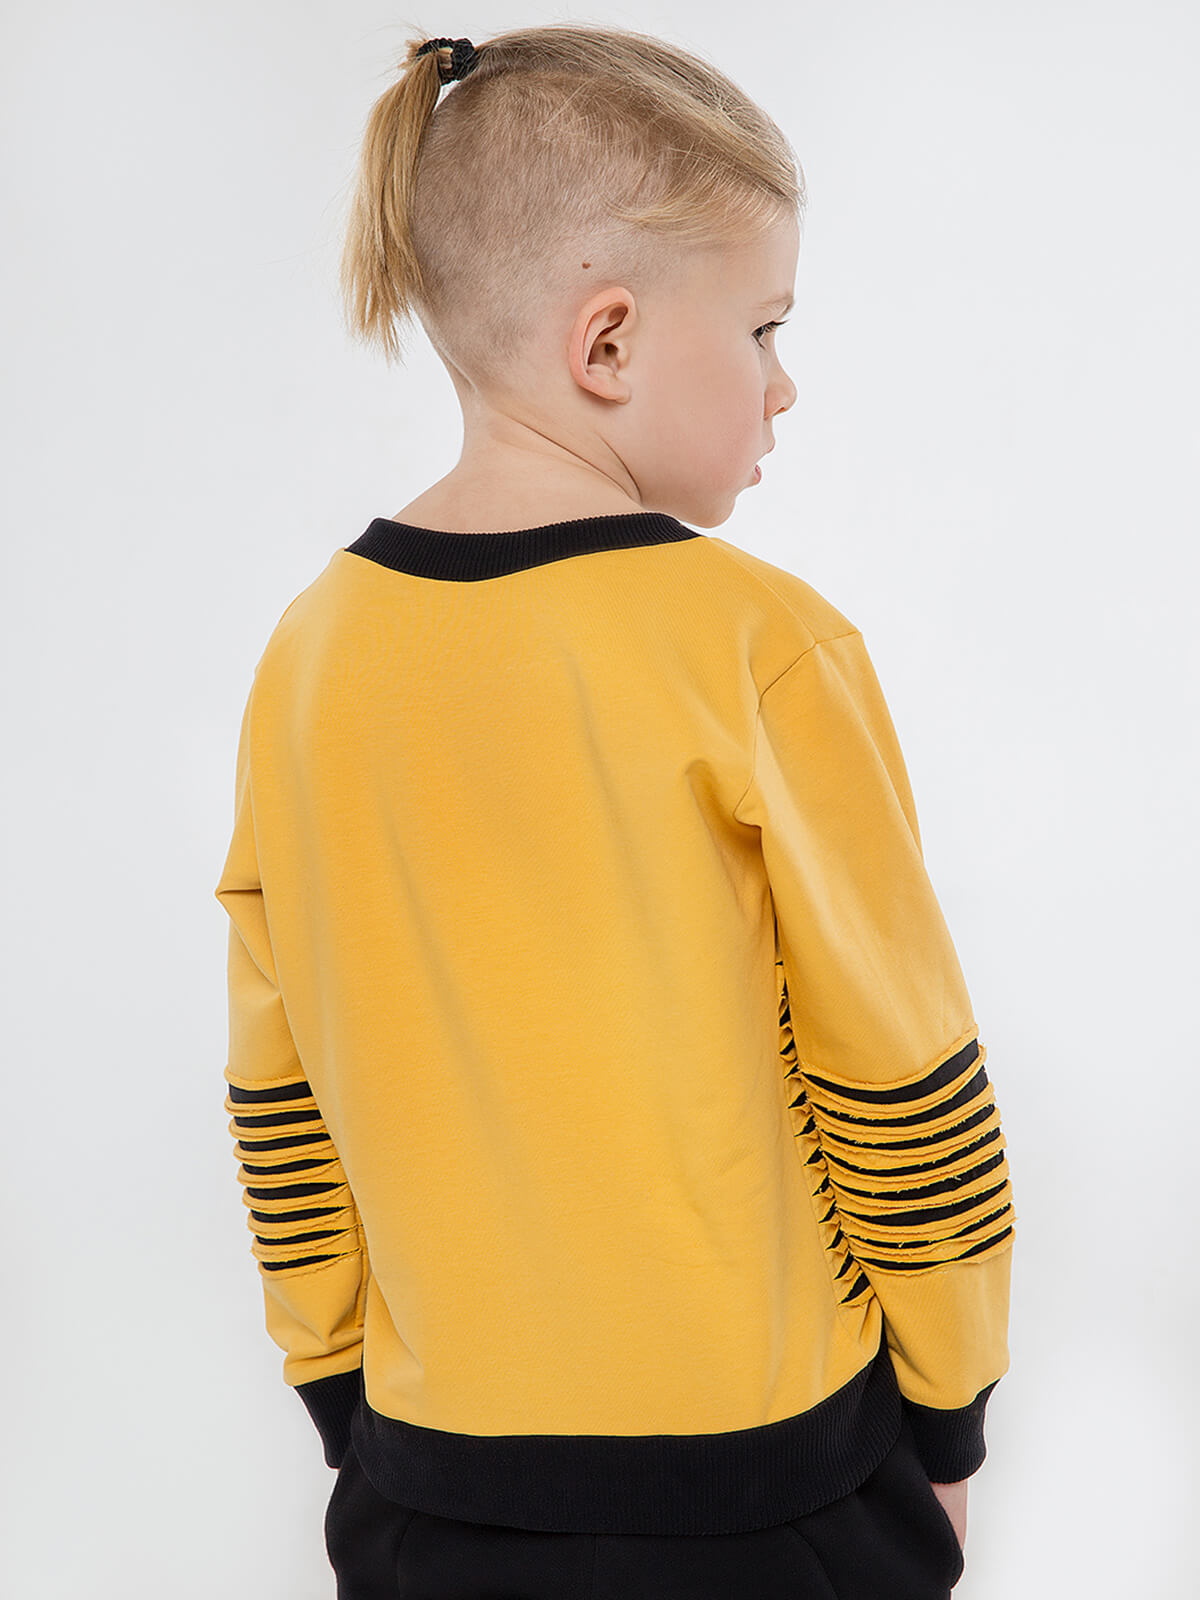 Kids Sweatshirt Chornogora. Color yellow.  Material: 77% cotton, 23% polyester.